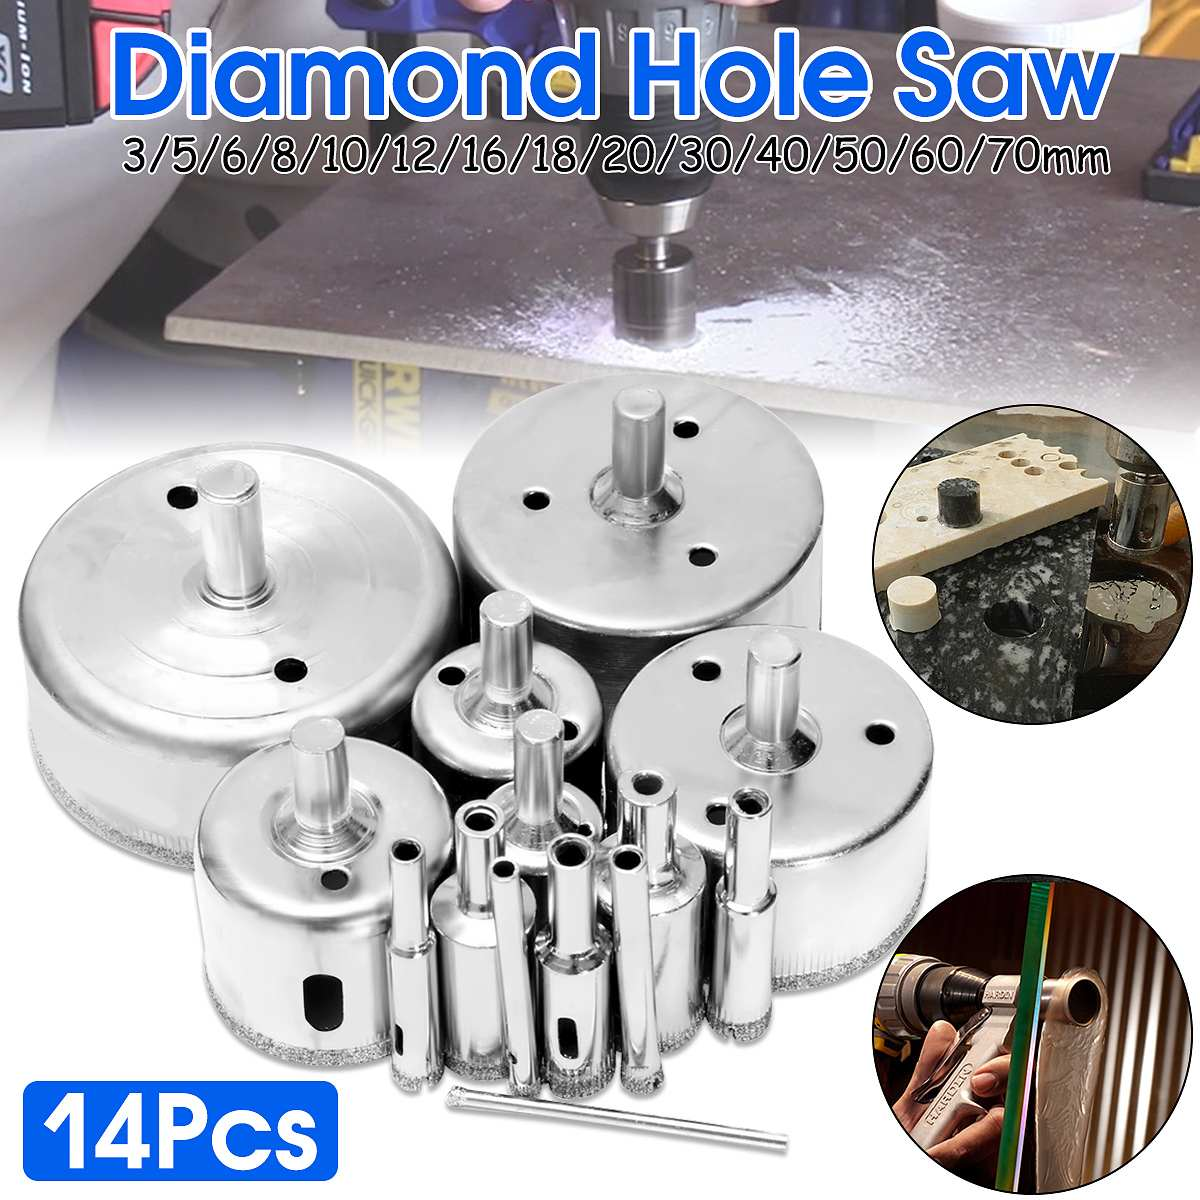 100mm Diamond Drill Bit Hole Saw Glass Porcelain Ceramic Marble Tile 1pcs